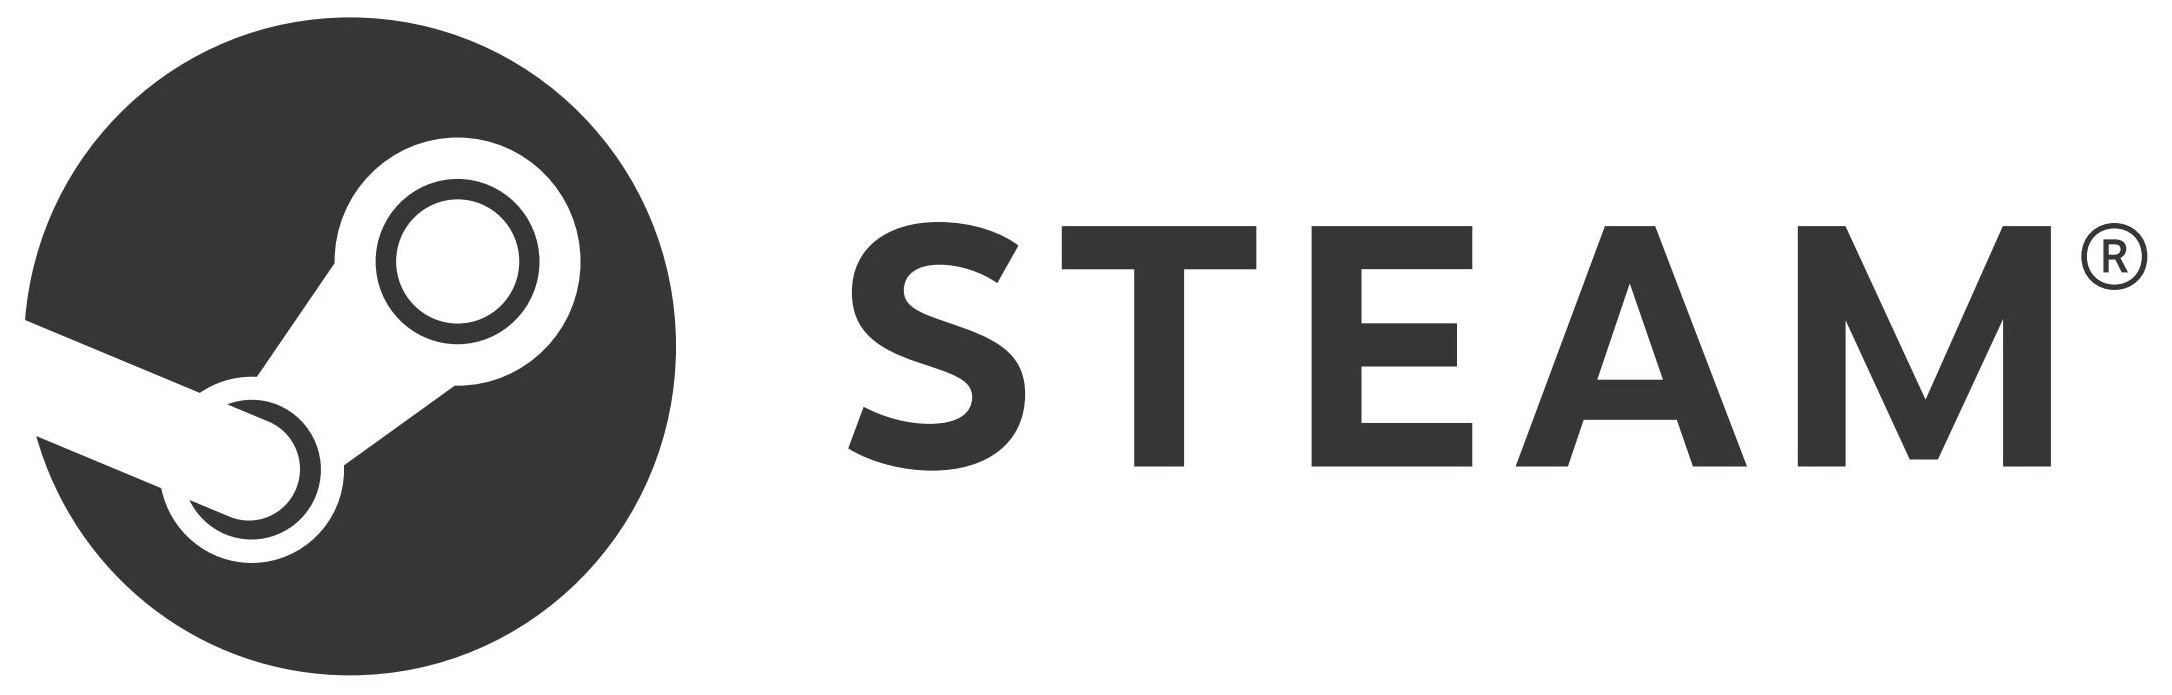 New Steam Logo with name